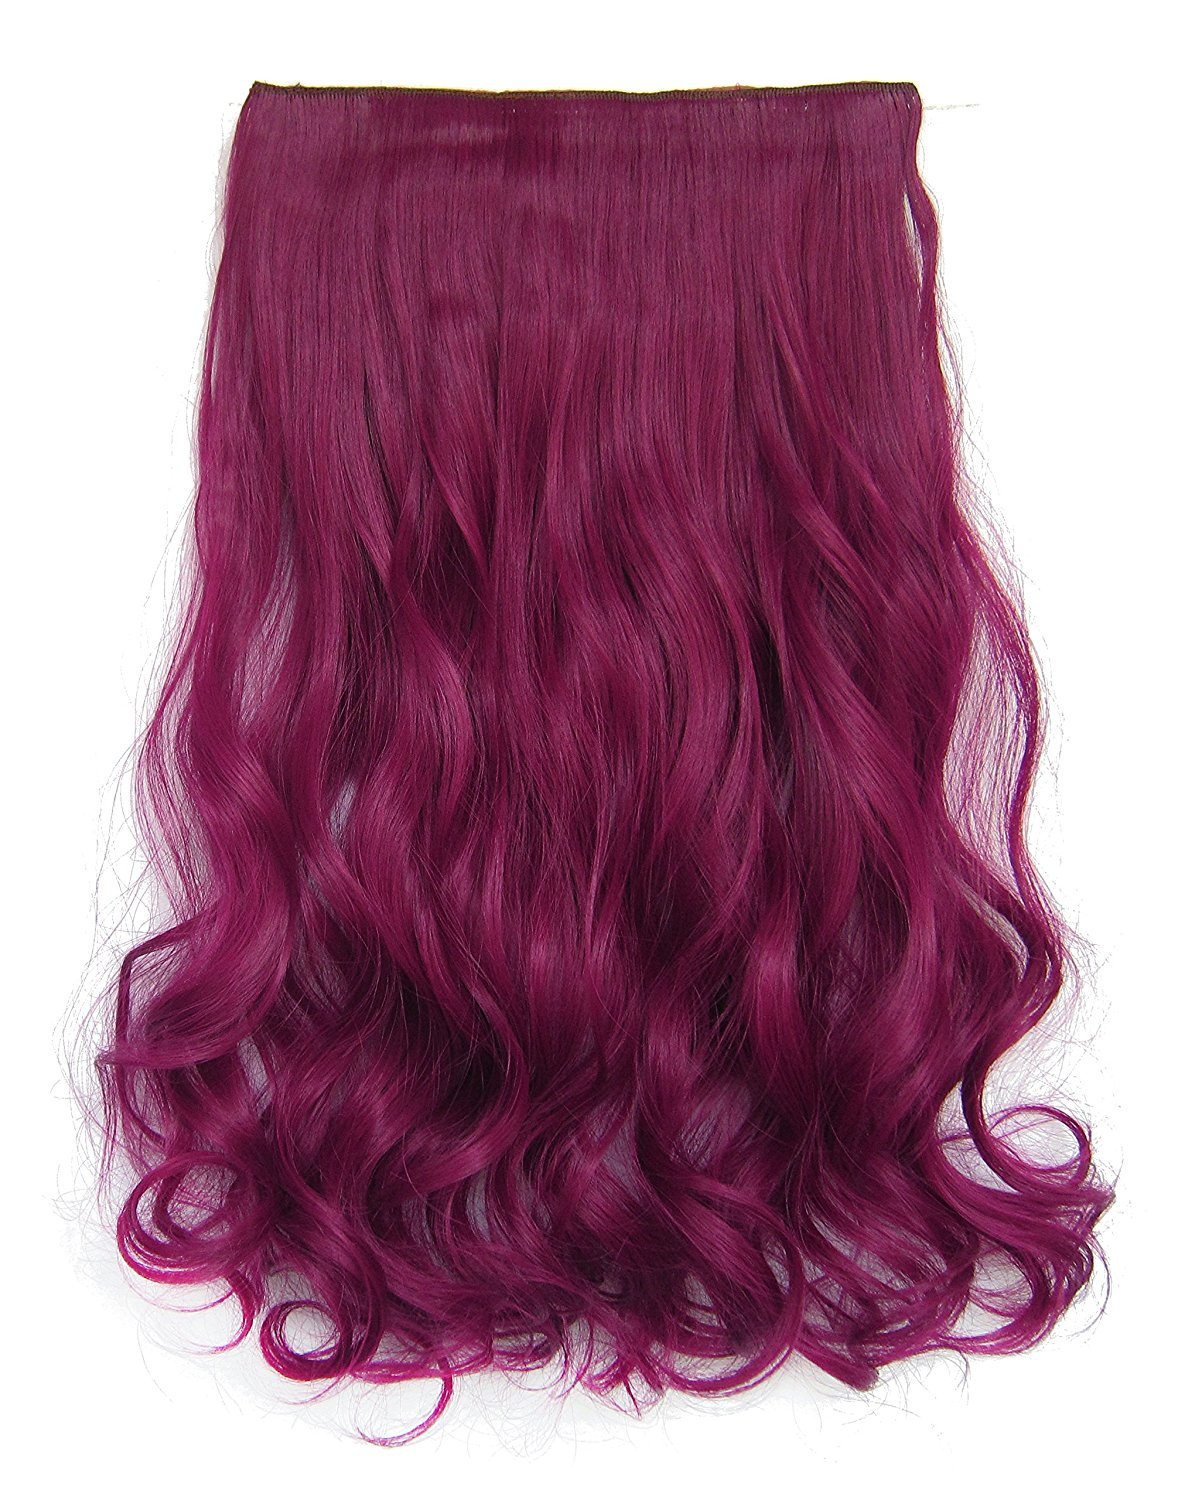 Cheap Best Wavy Hair Extensions Find Best Wavy Hair Extensions